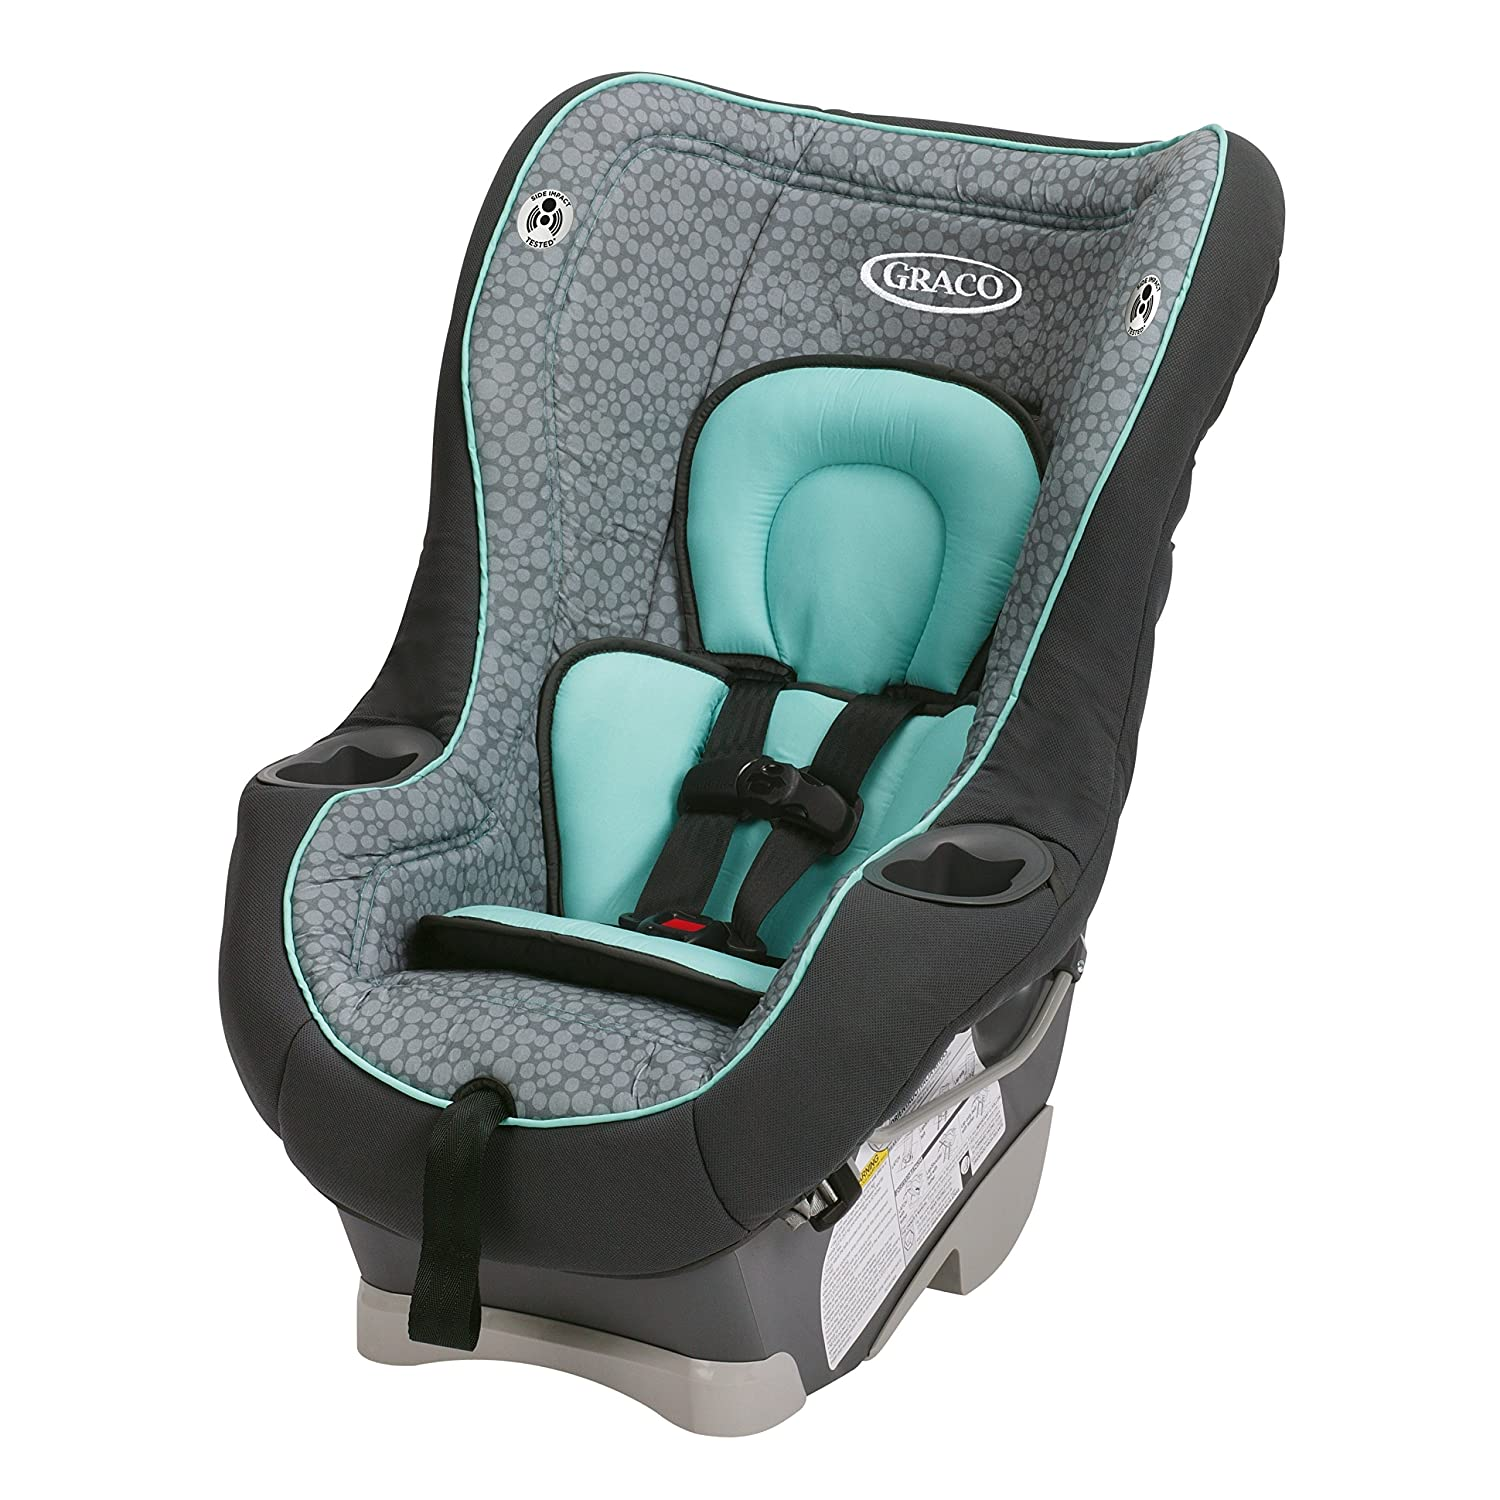 New Graco Extend2fit Convertible Preview Extended Rear Facing With Extended Legroom moreover New Seats Debut Britax Graco also Evenflo furthermore 38843615510702339 moreover Best Car Seats For Toddlers Reviews. on convertible car seat graco